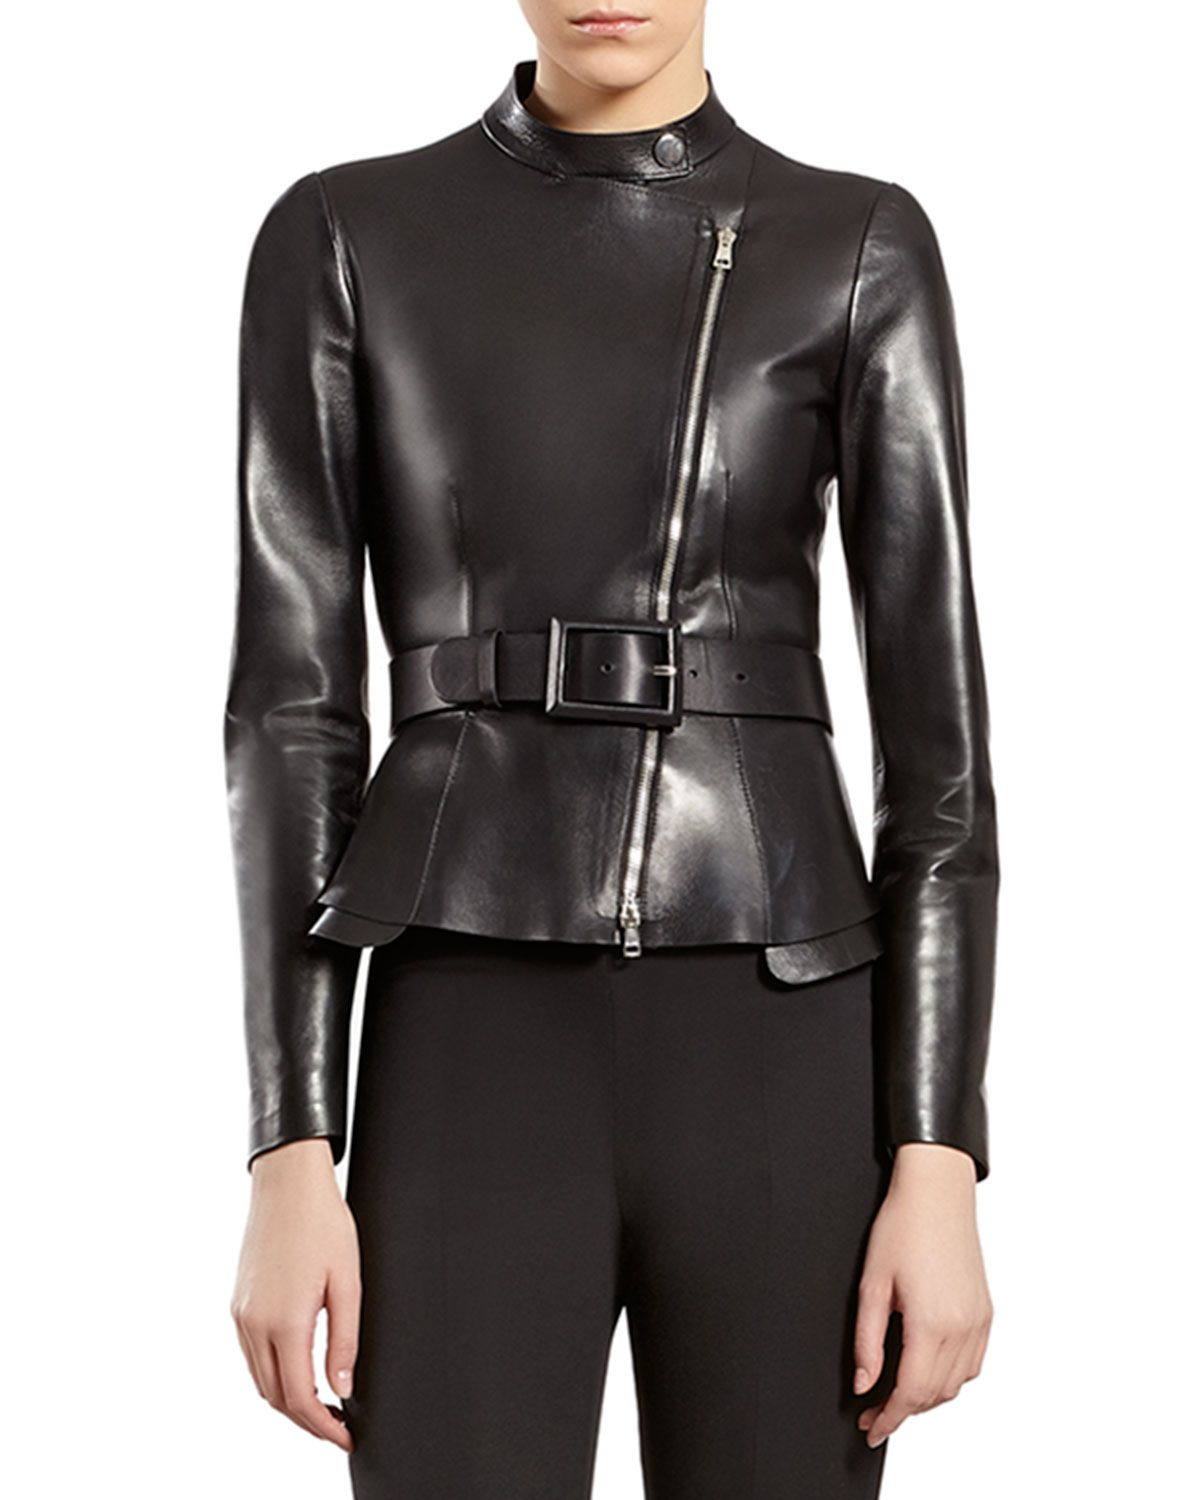 Gucci Black Leather ZipFront Jacket in 2020 Jackets